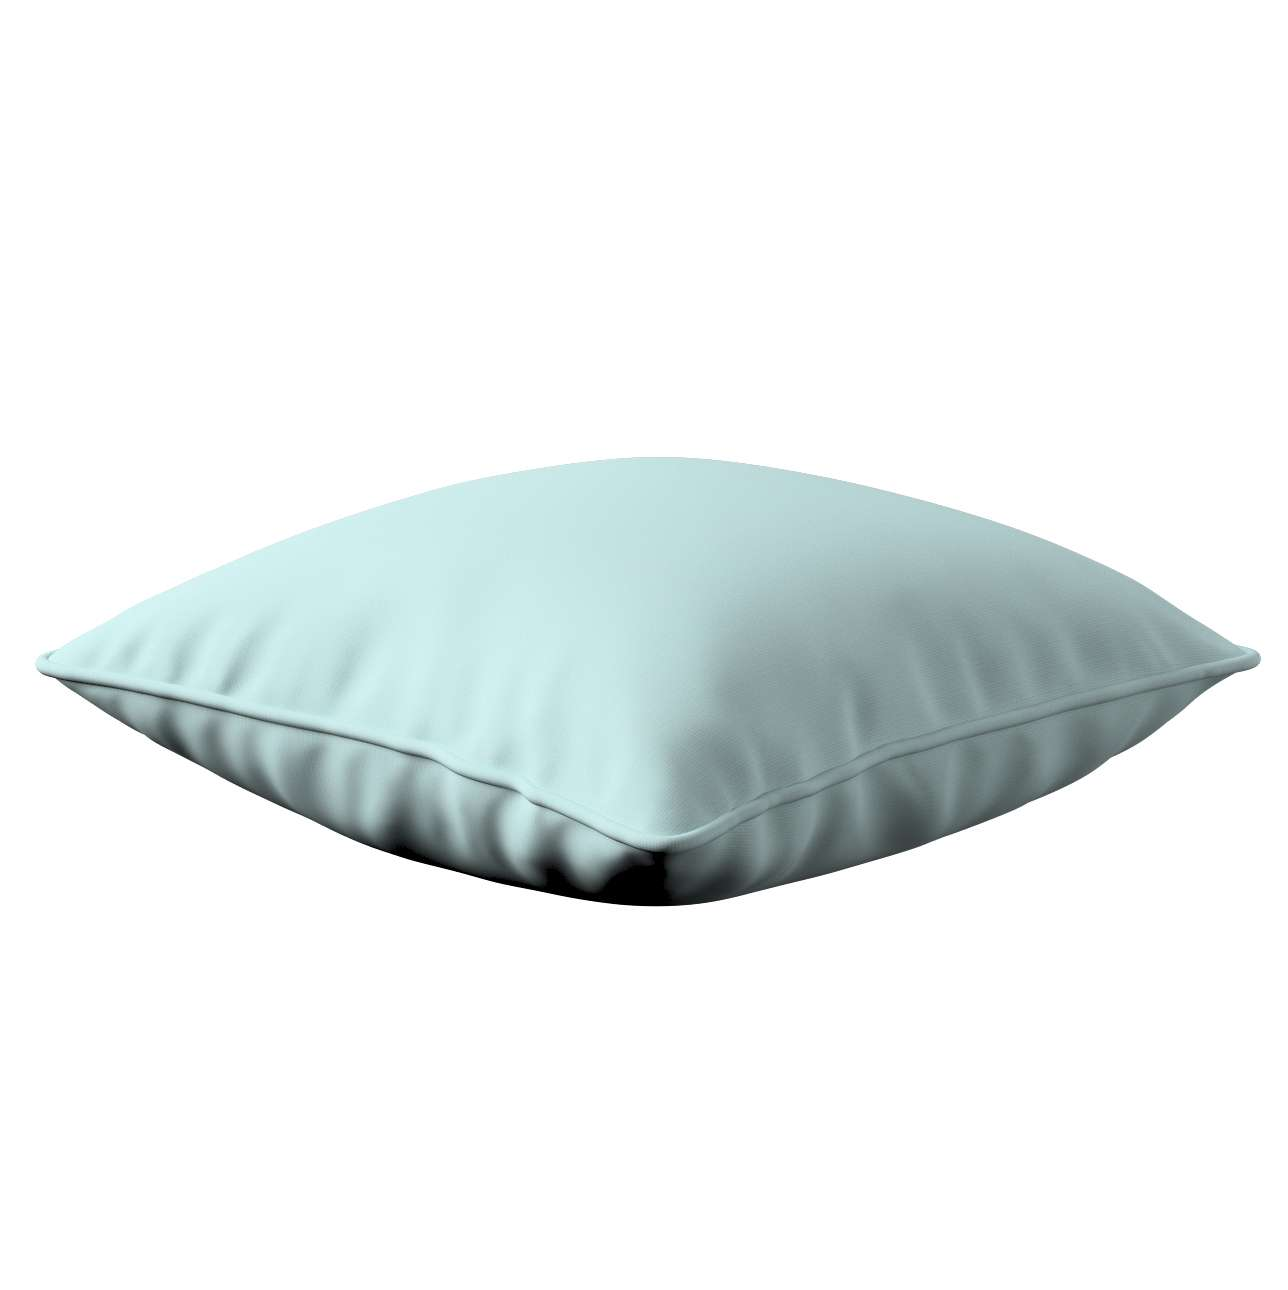 Lola piped cushion cover in collection Cotton Story, fabric: 702-10